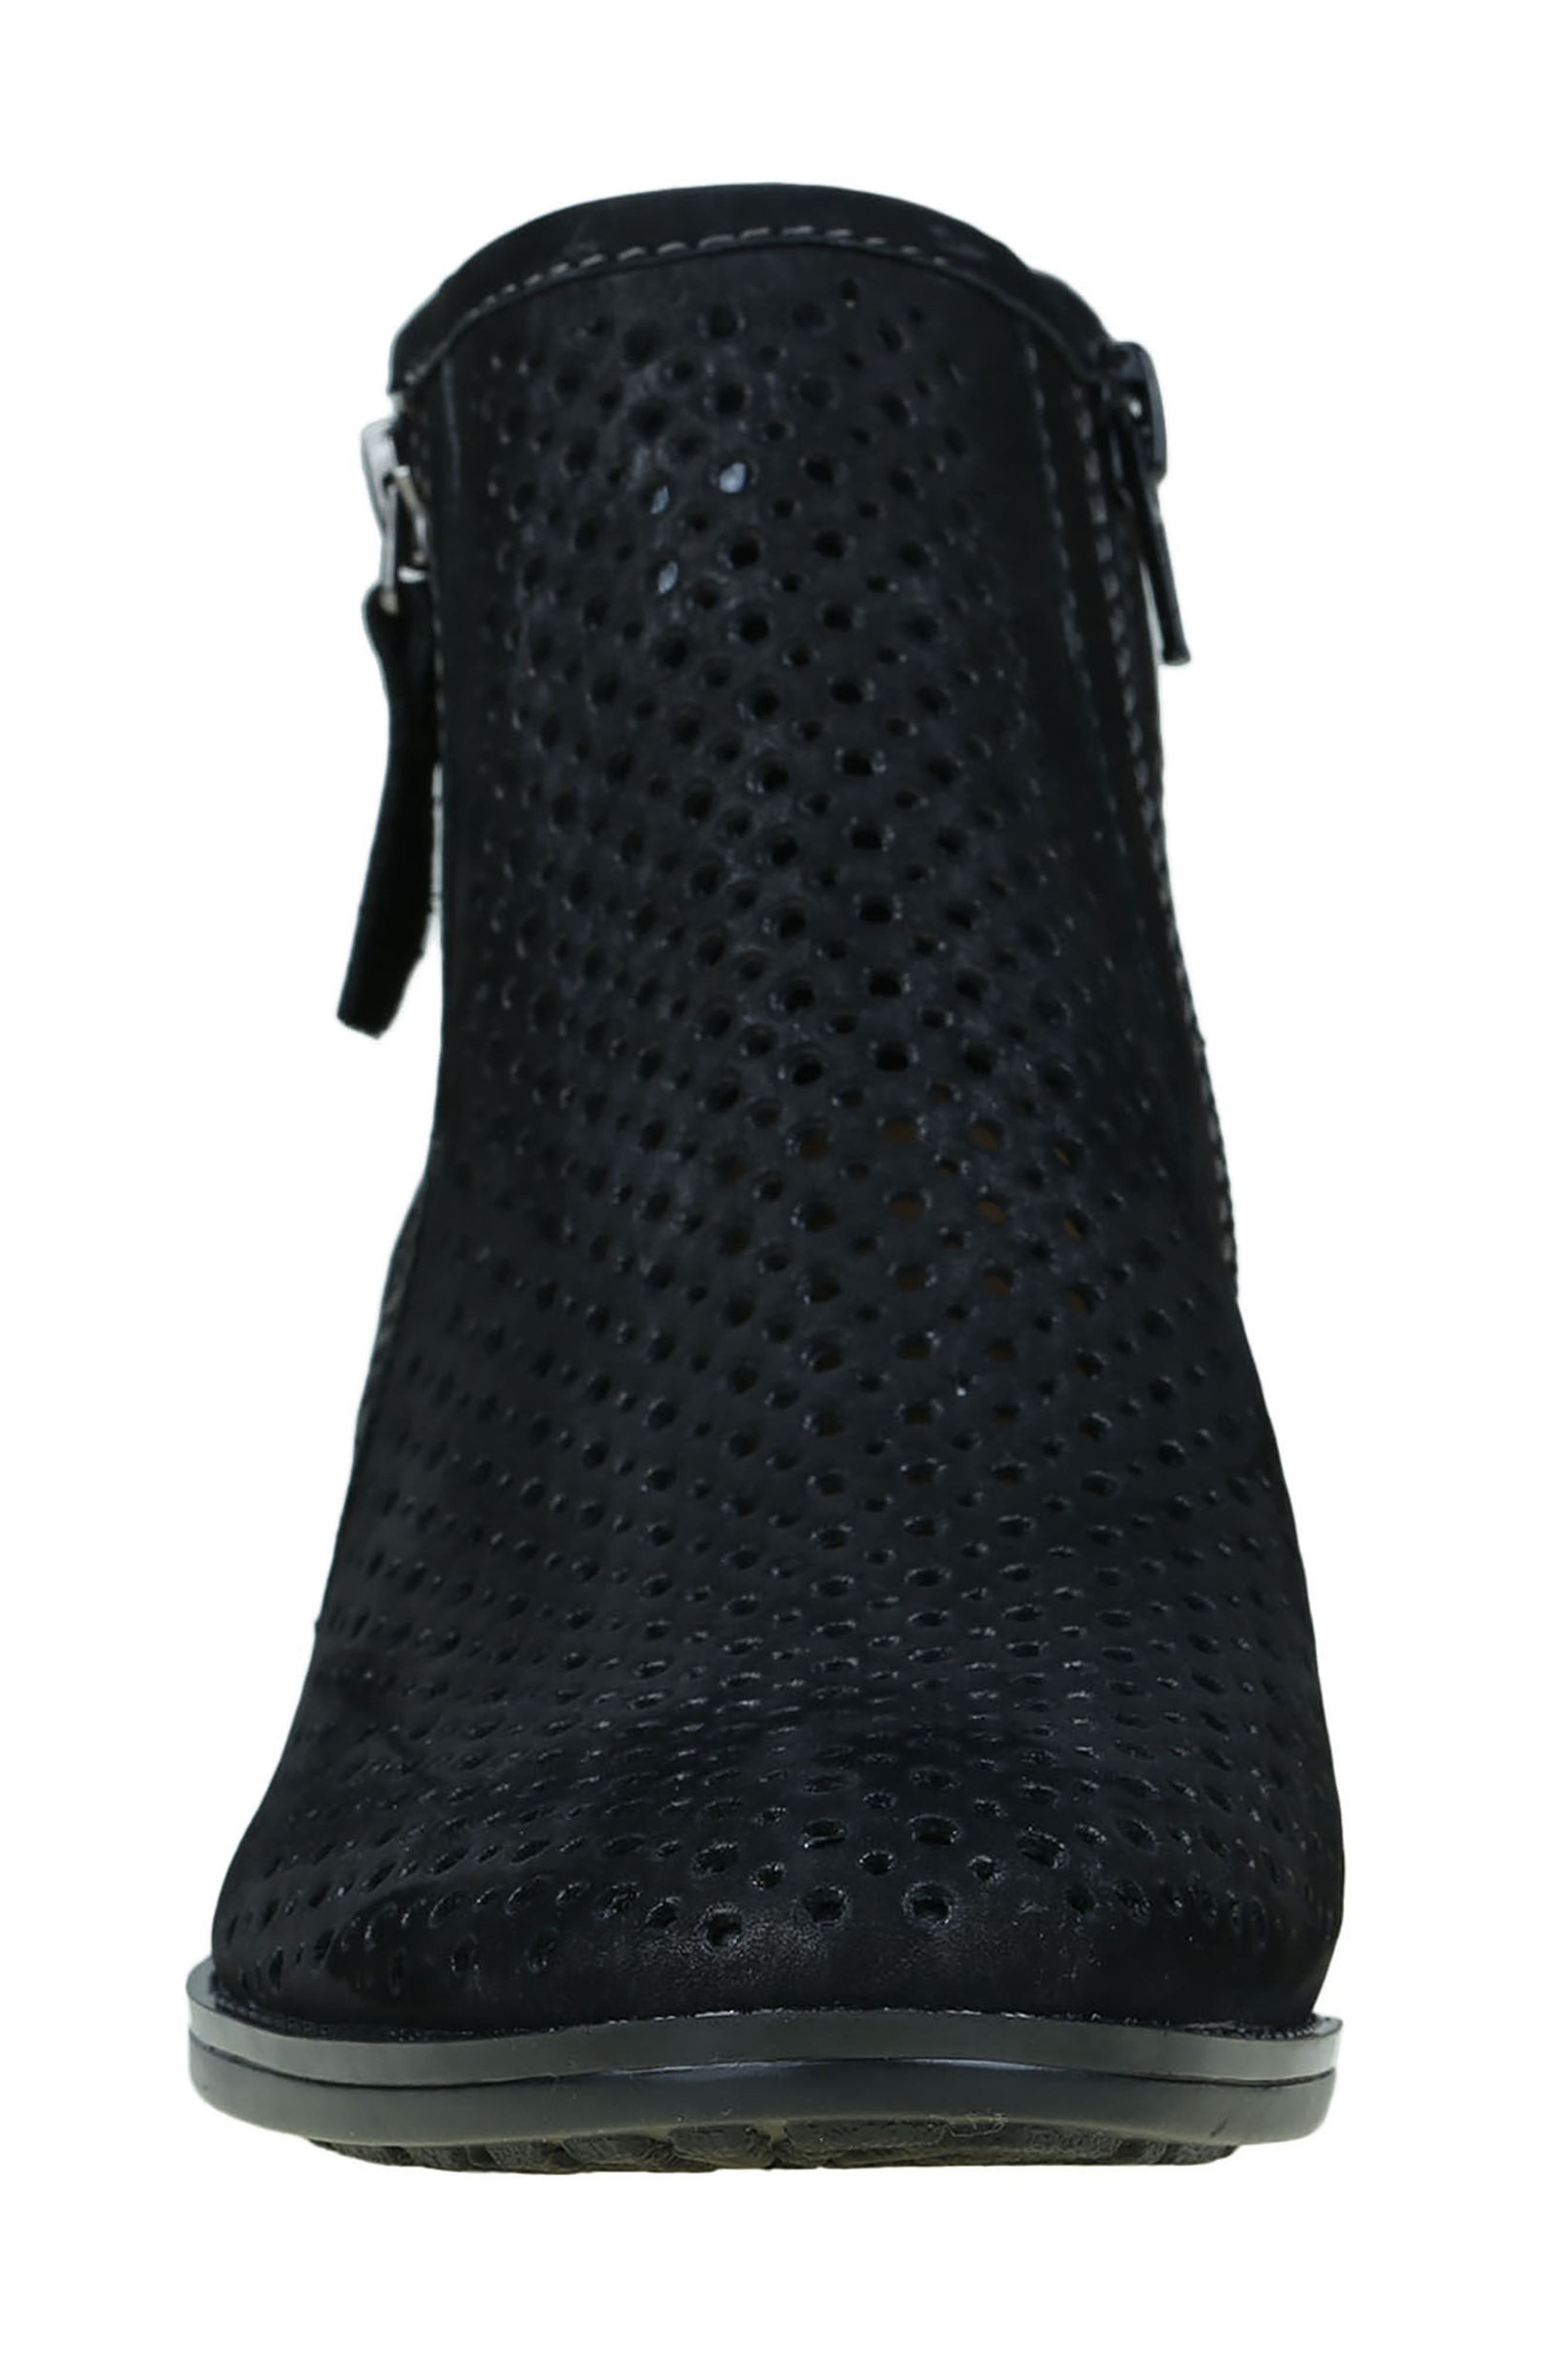 Pineberry Bootie,                             Alternate thumbnail 3, color,                             Black Soft Buck